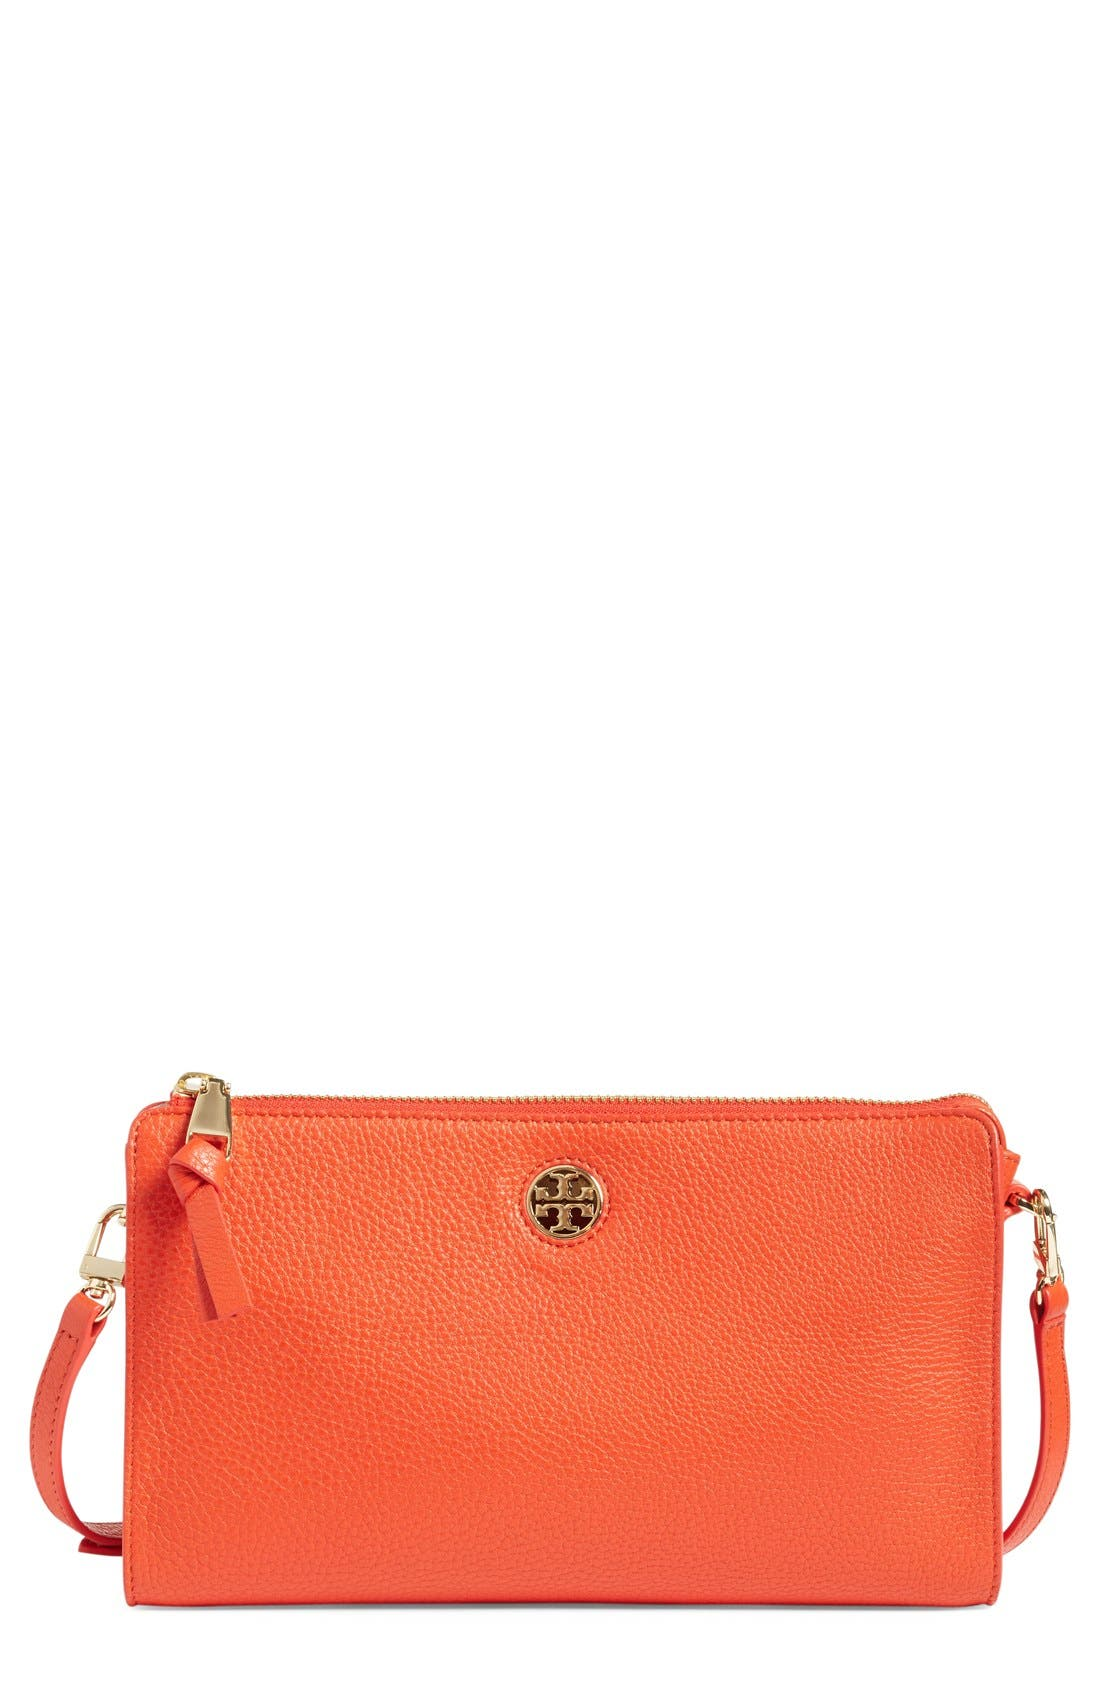 Tory Burch 'Robinson' Pebbled Leather Crossbody Wallet